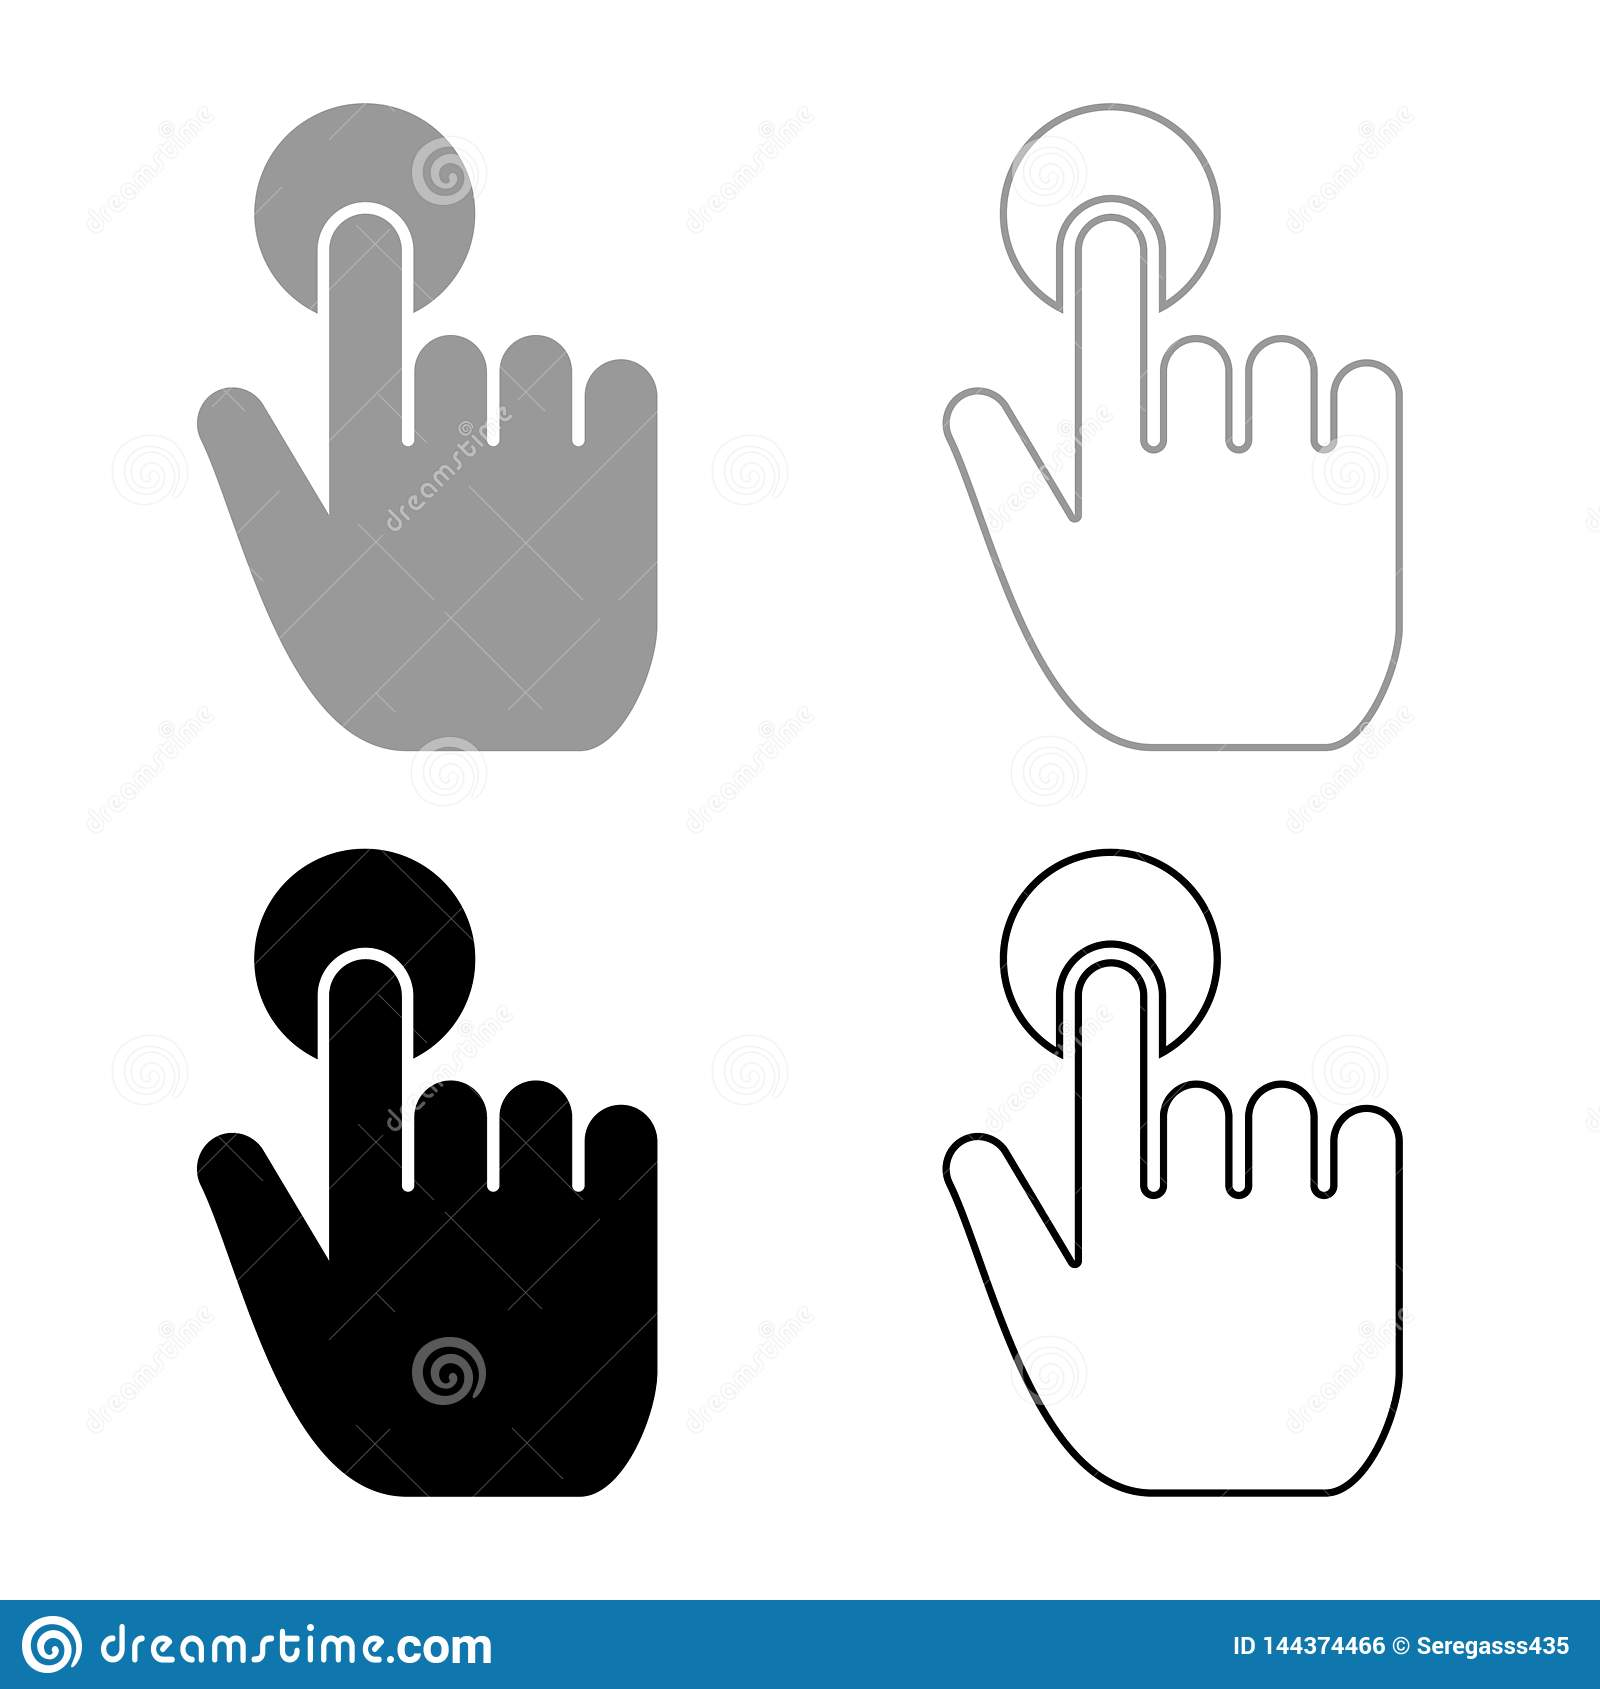 Click hand Touch of hand Finger click on screen surface icon set black color vector illustration flat style image